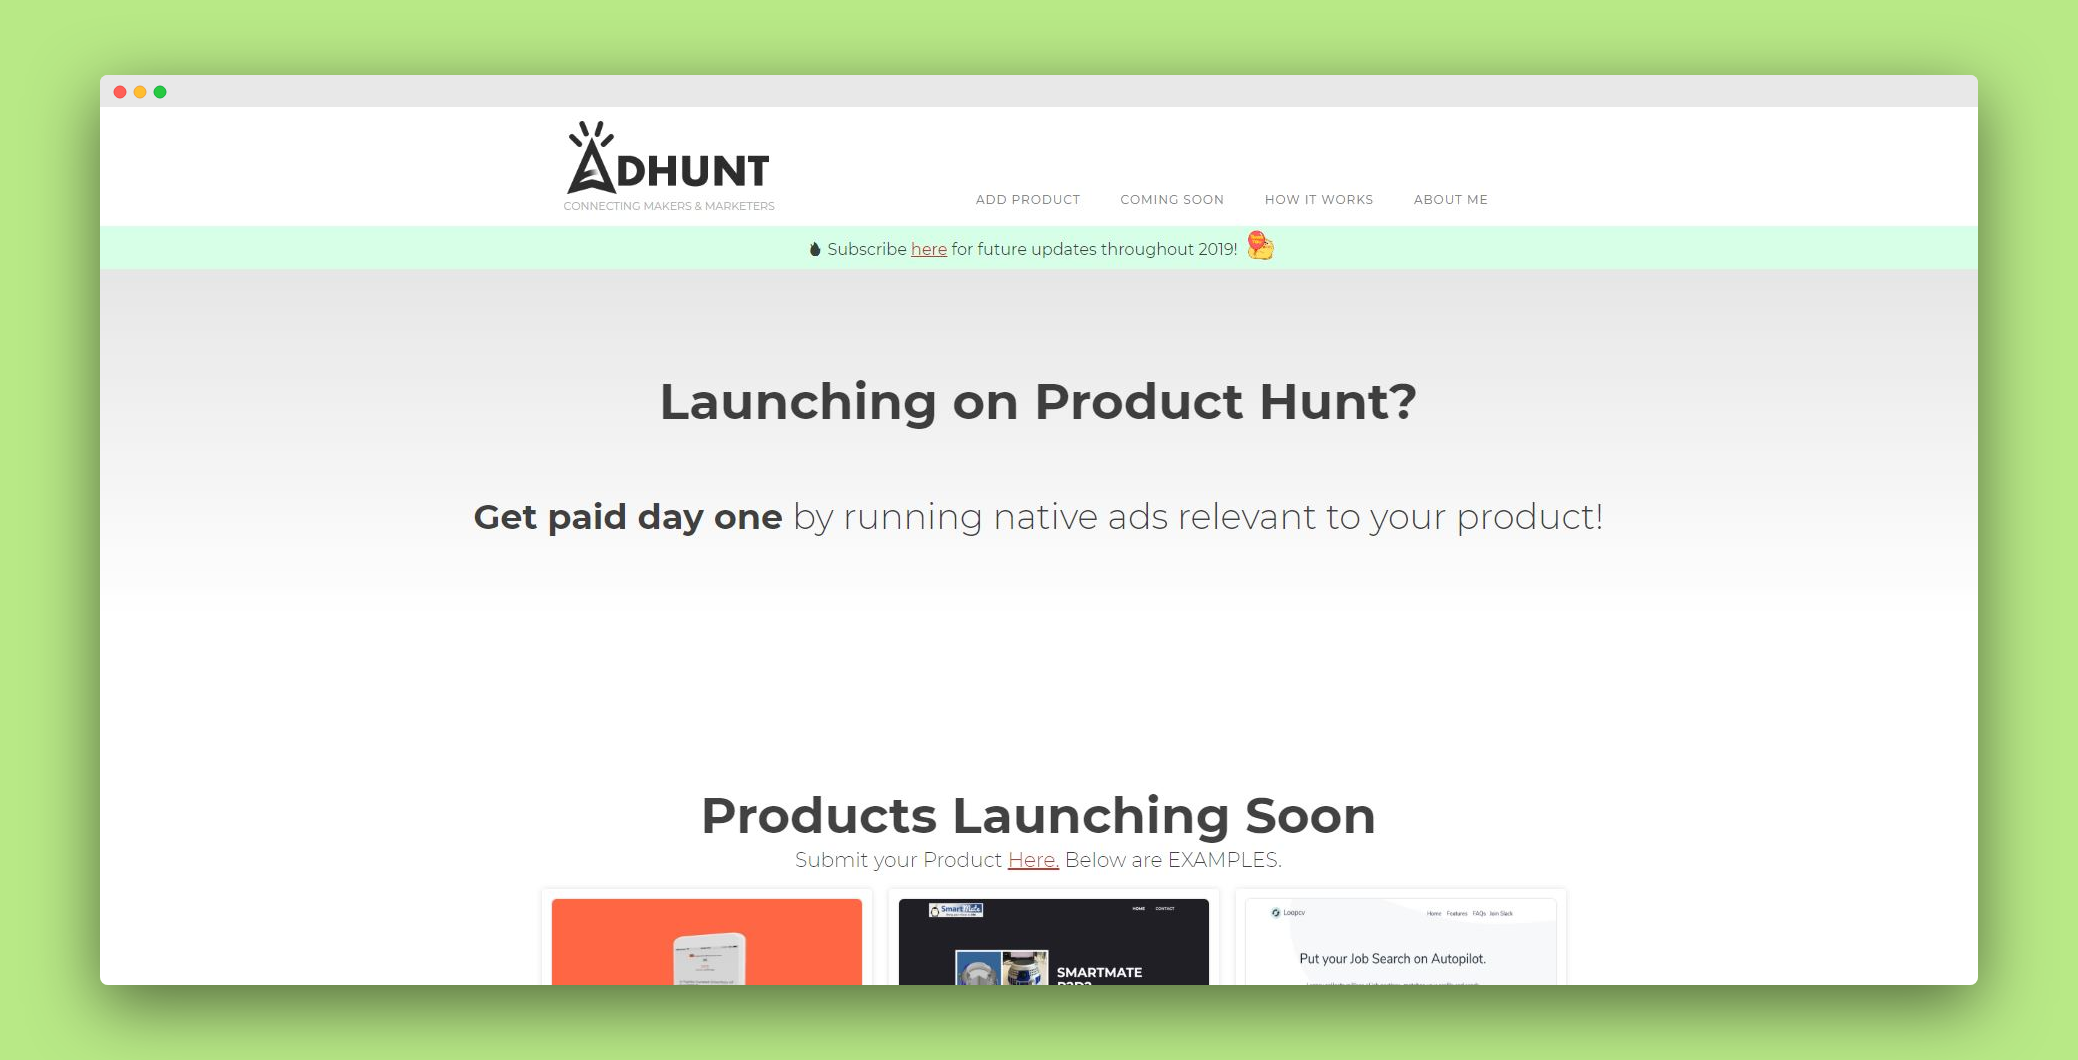 Get paid day one by running native ads relevant to your product!